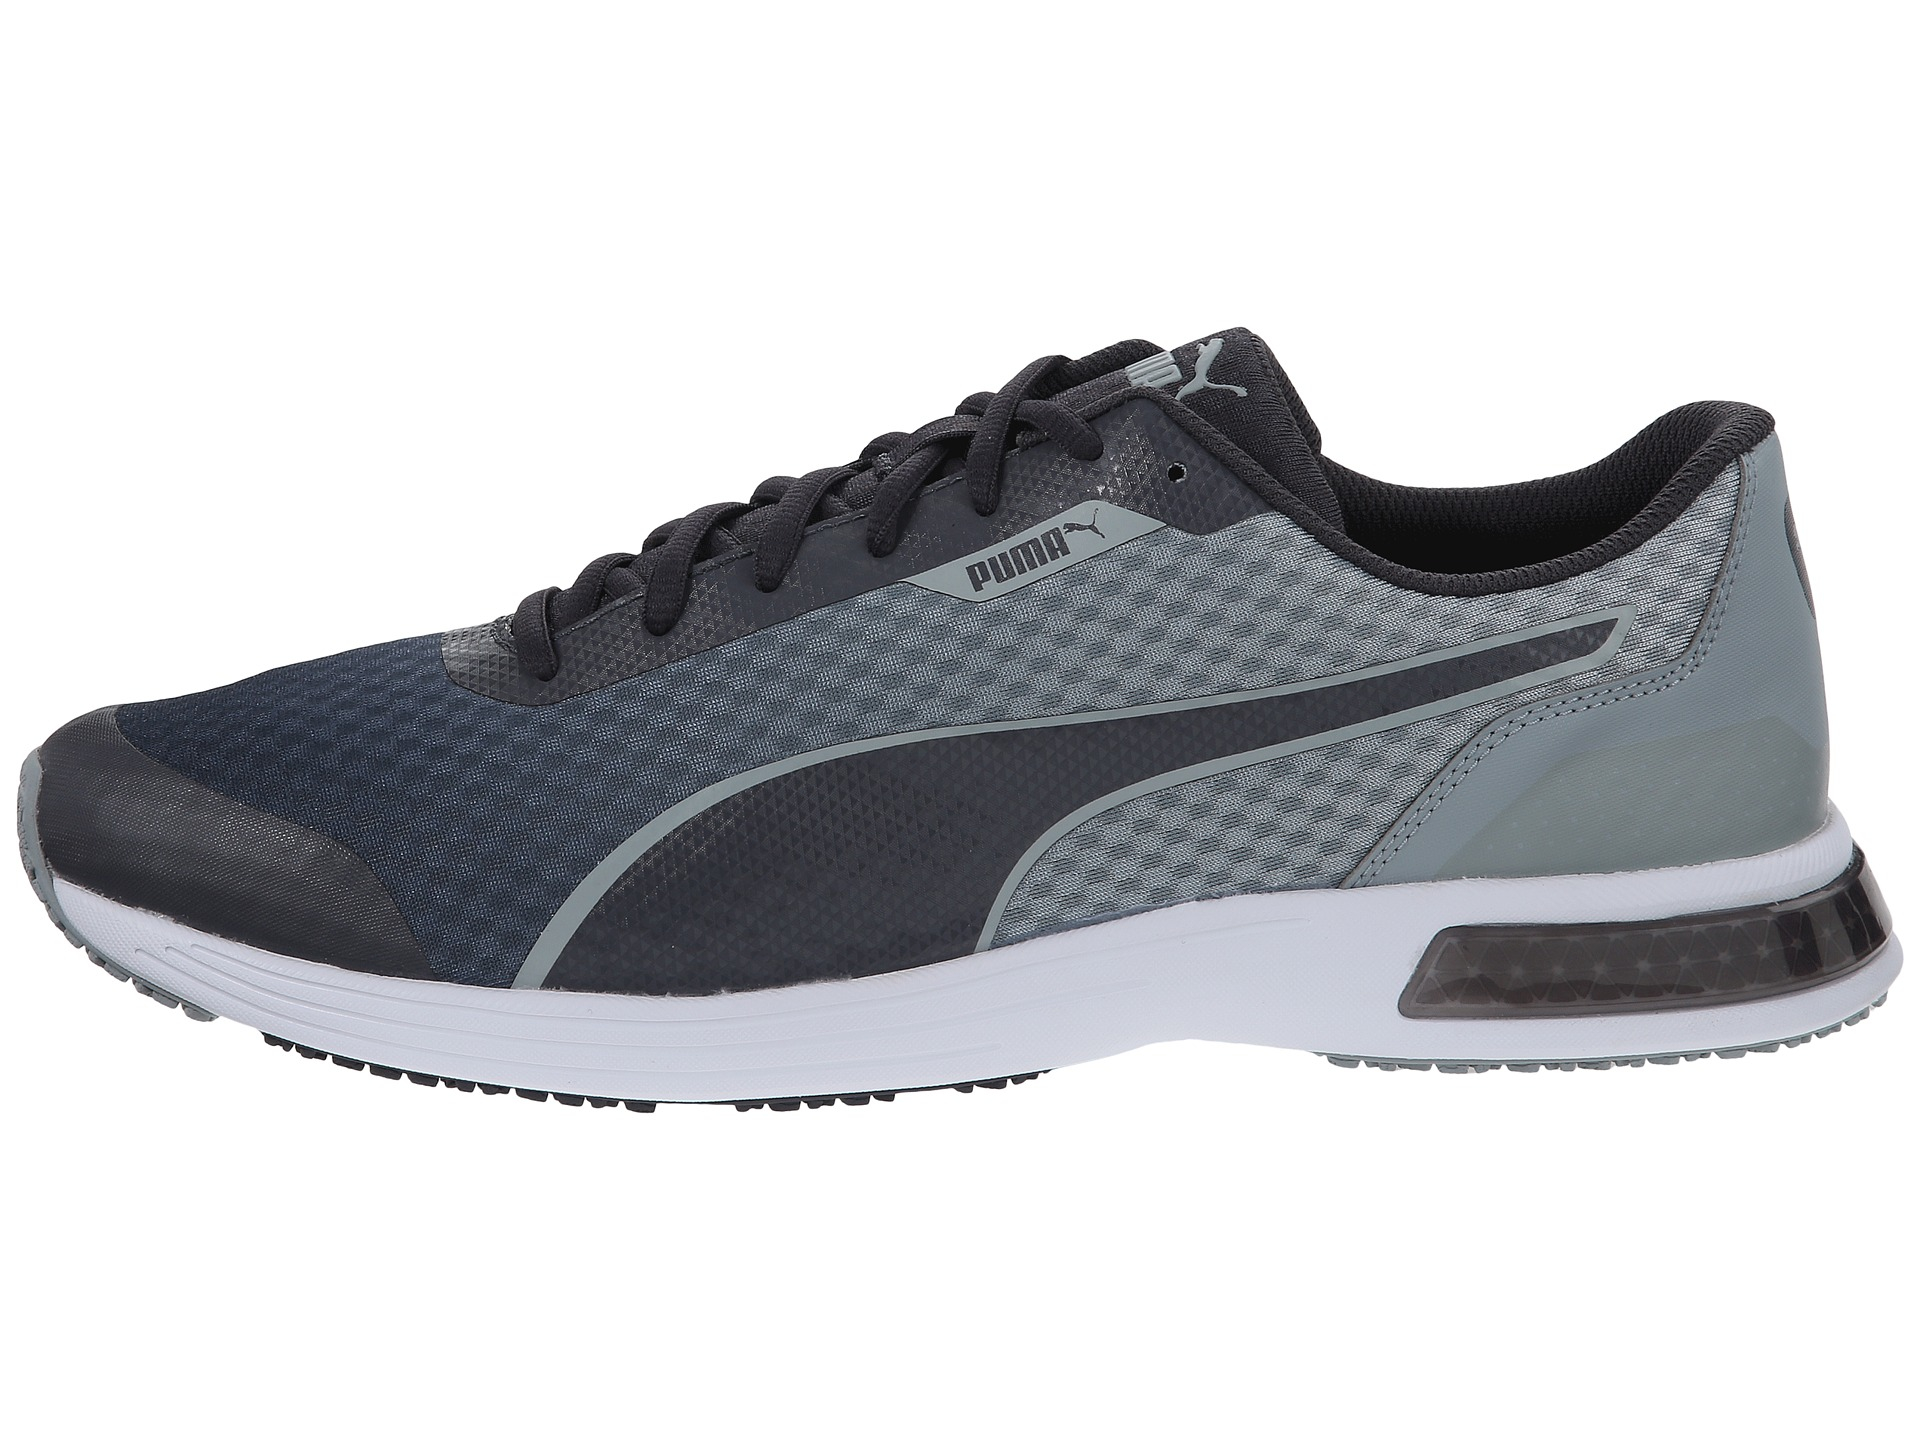 Lyst - PUMA T 74 Tech in Gray for Men 0fc397b6d9bbd